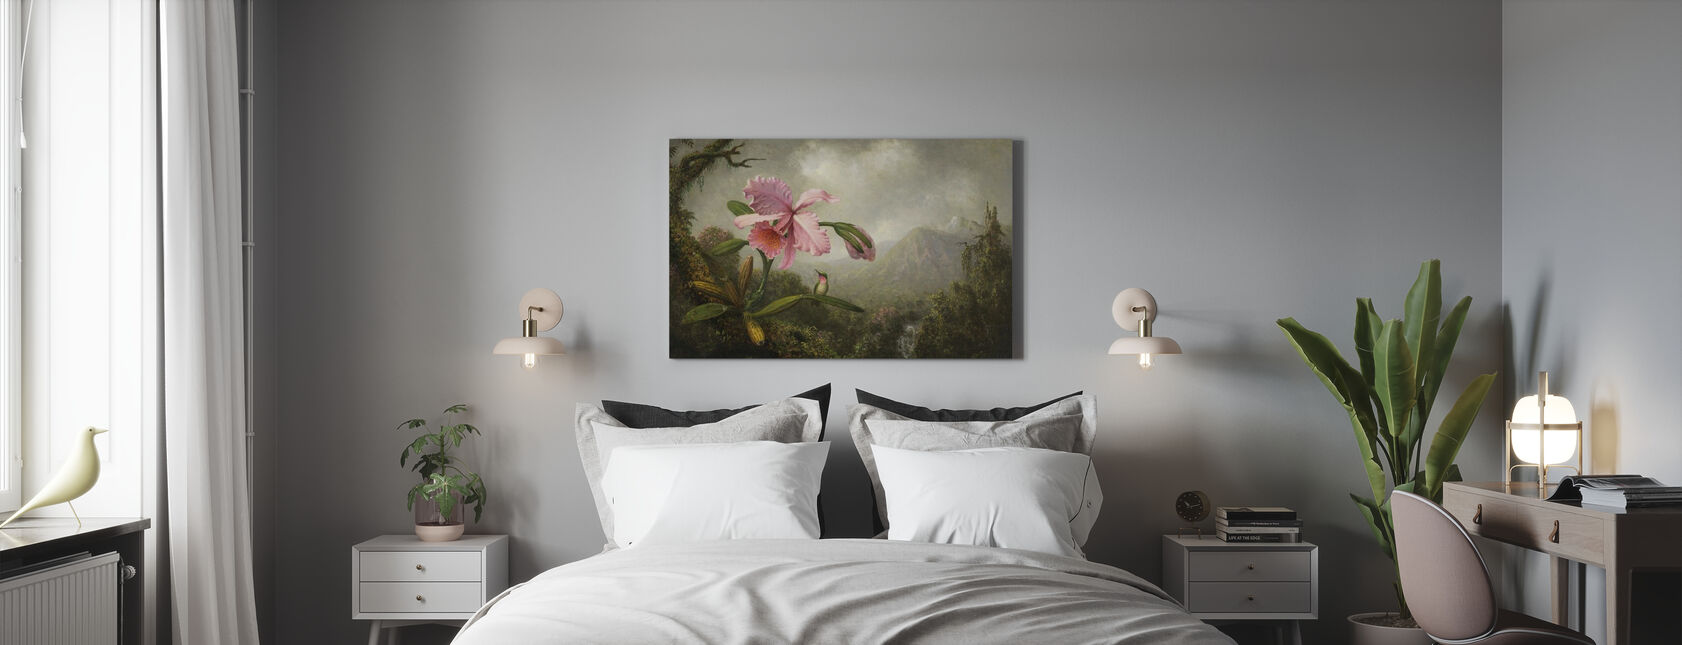 Orchid and Hummingbird - Canvas print - Bedroom